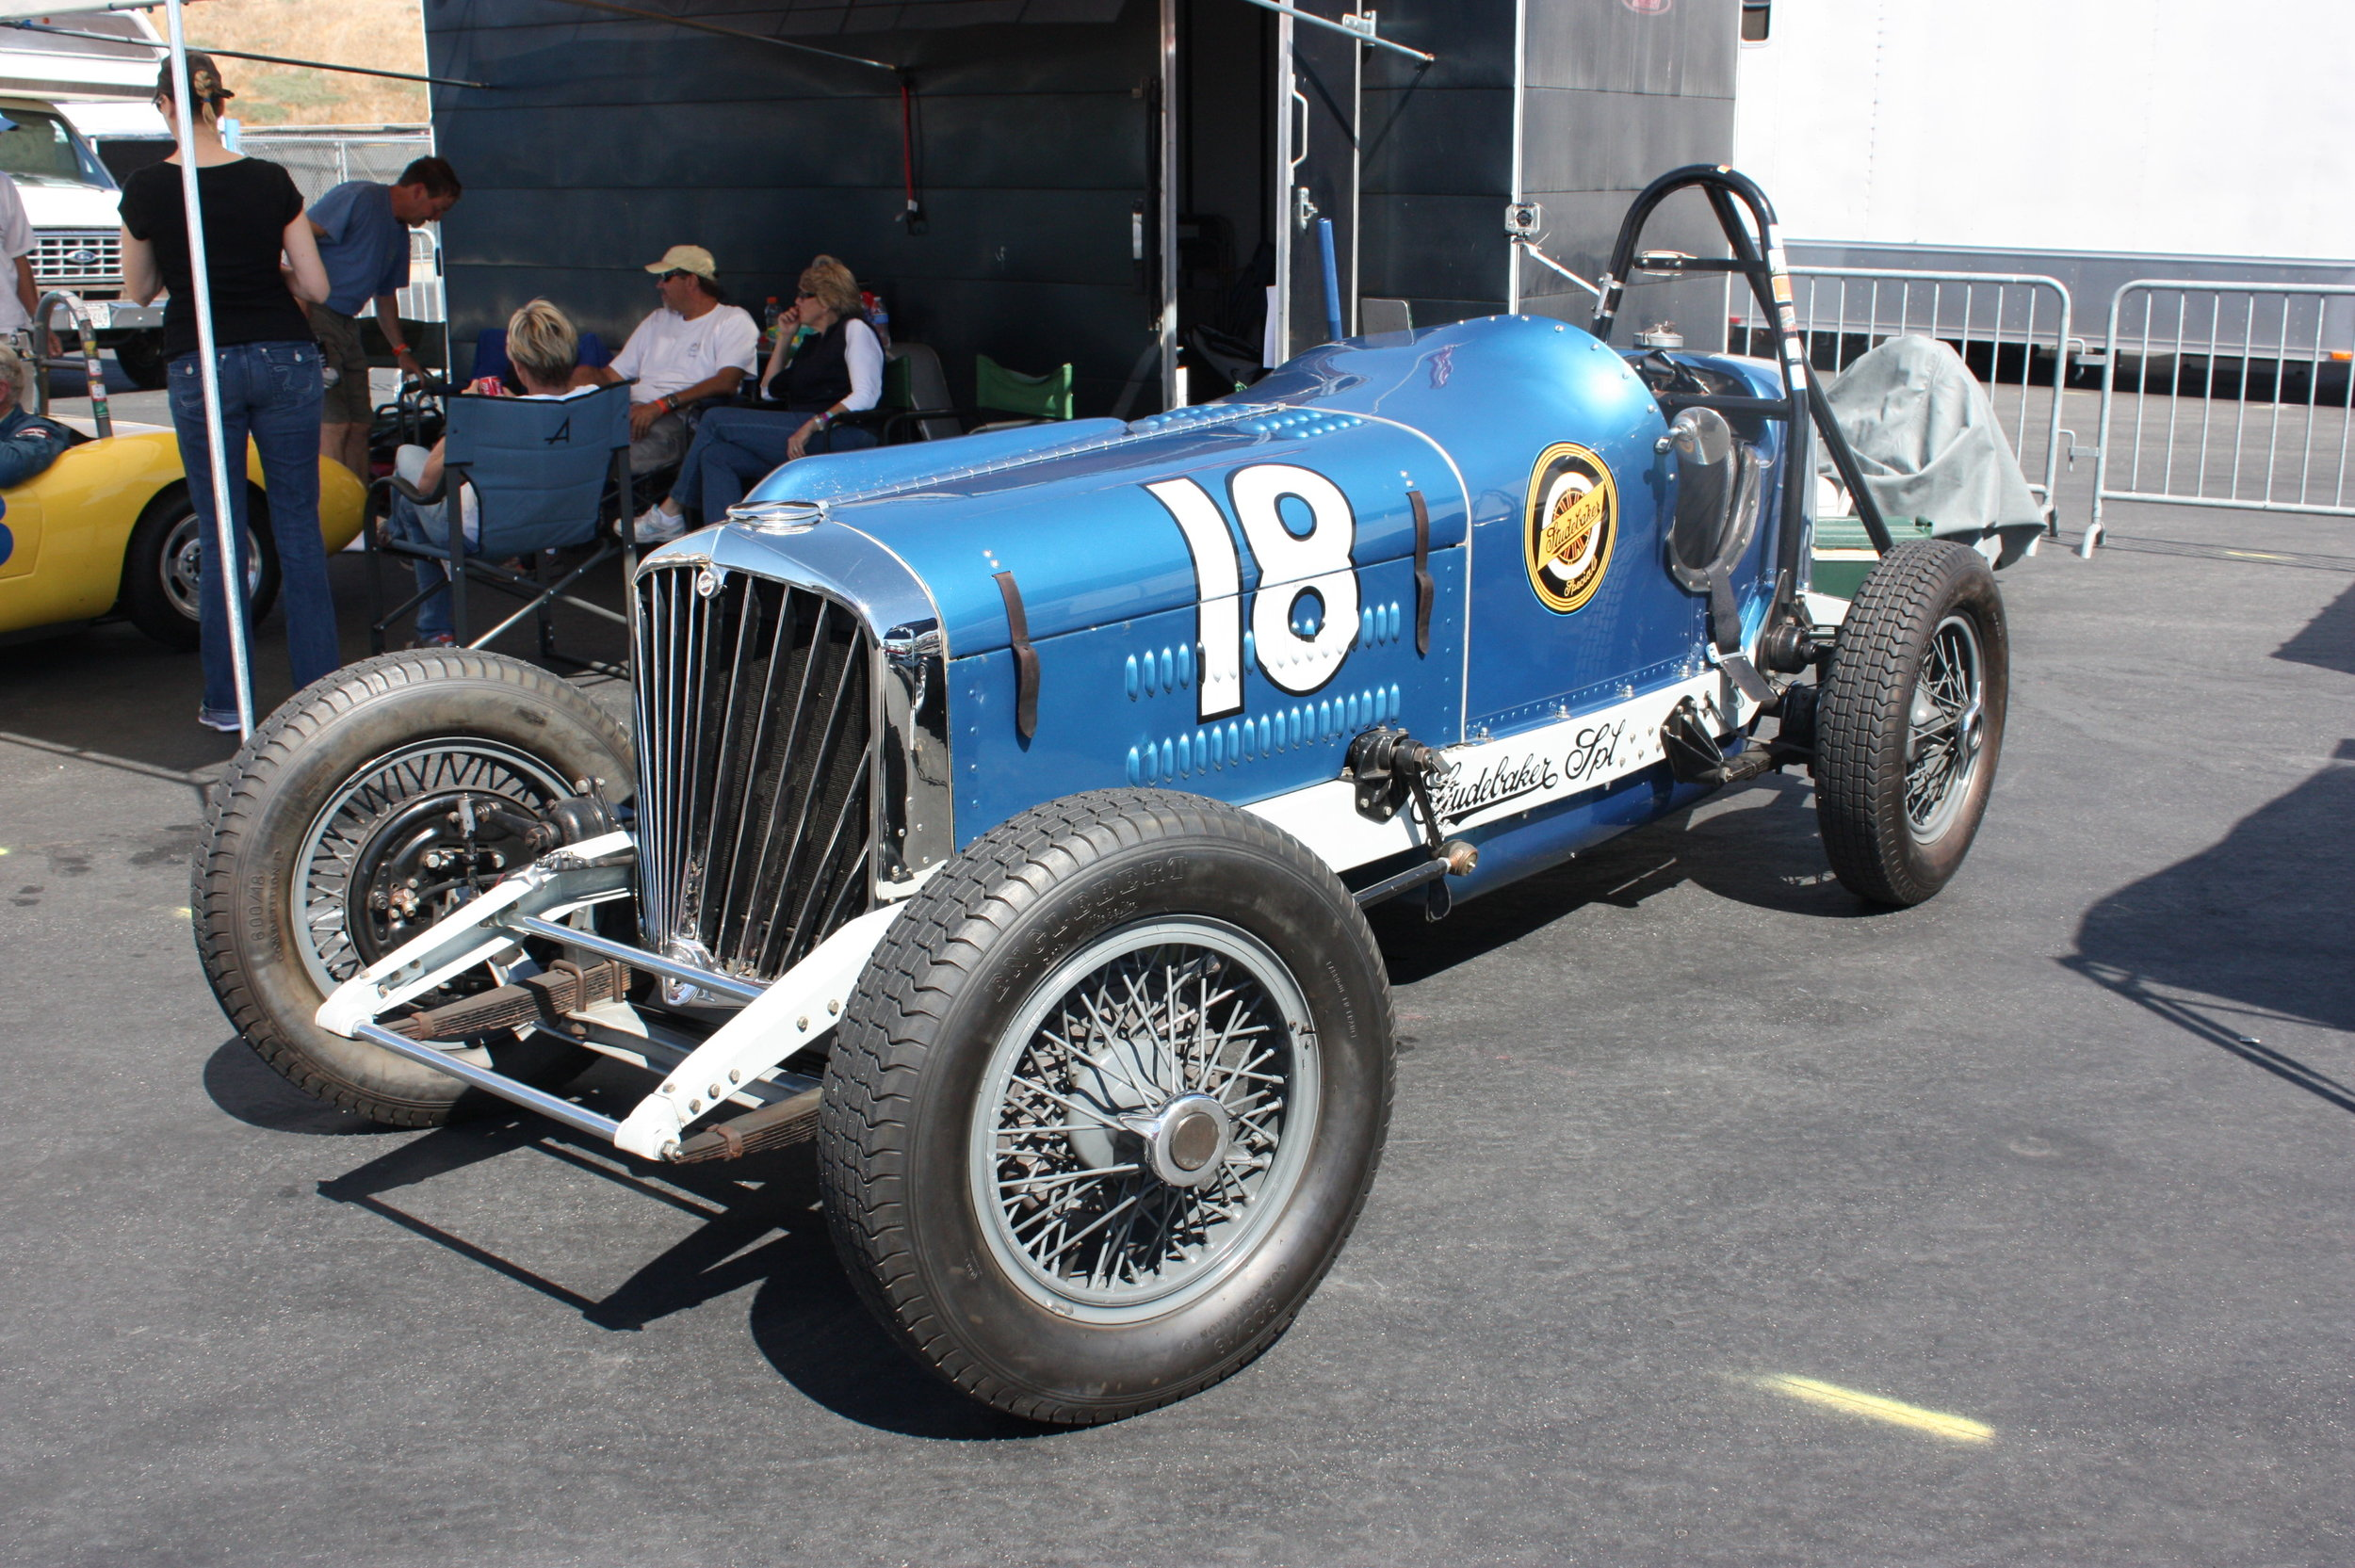 1932 Studebaker Special Indy racer powered by the President's STRAIGHT-Eight engine (photo by Mal Pearson at Laguna Seca 2015)